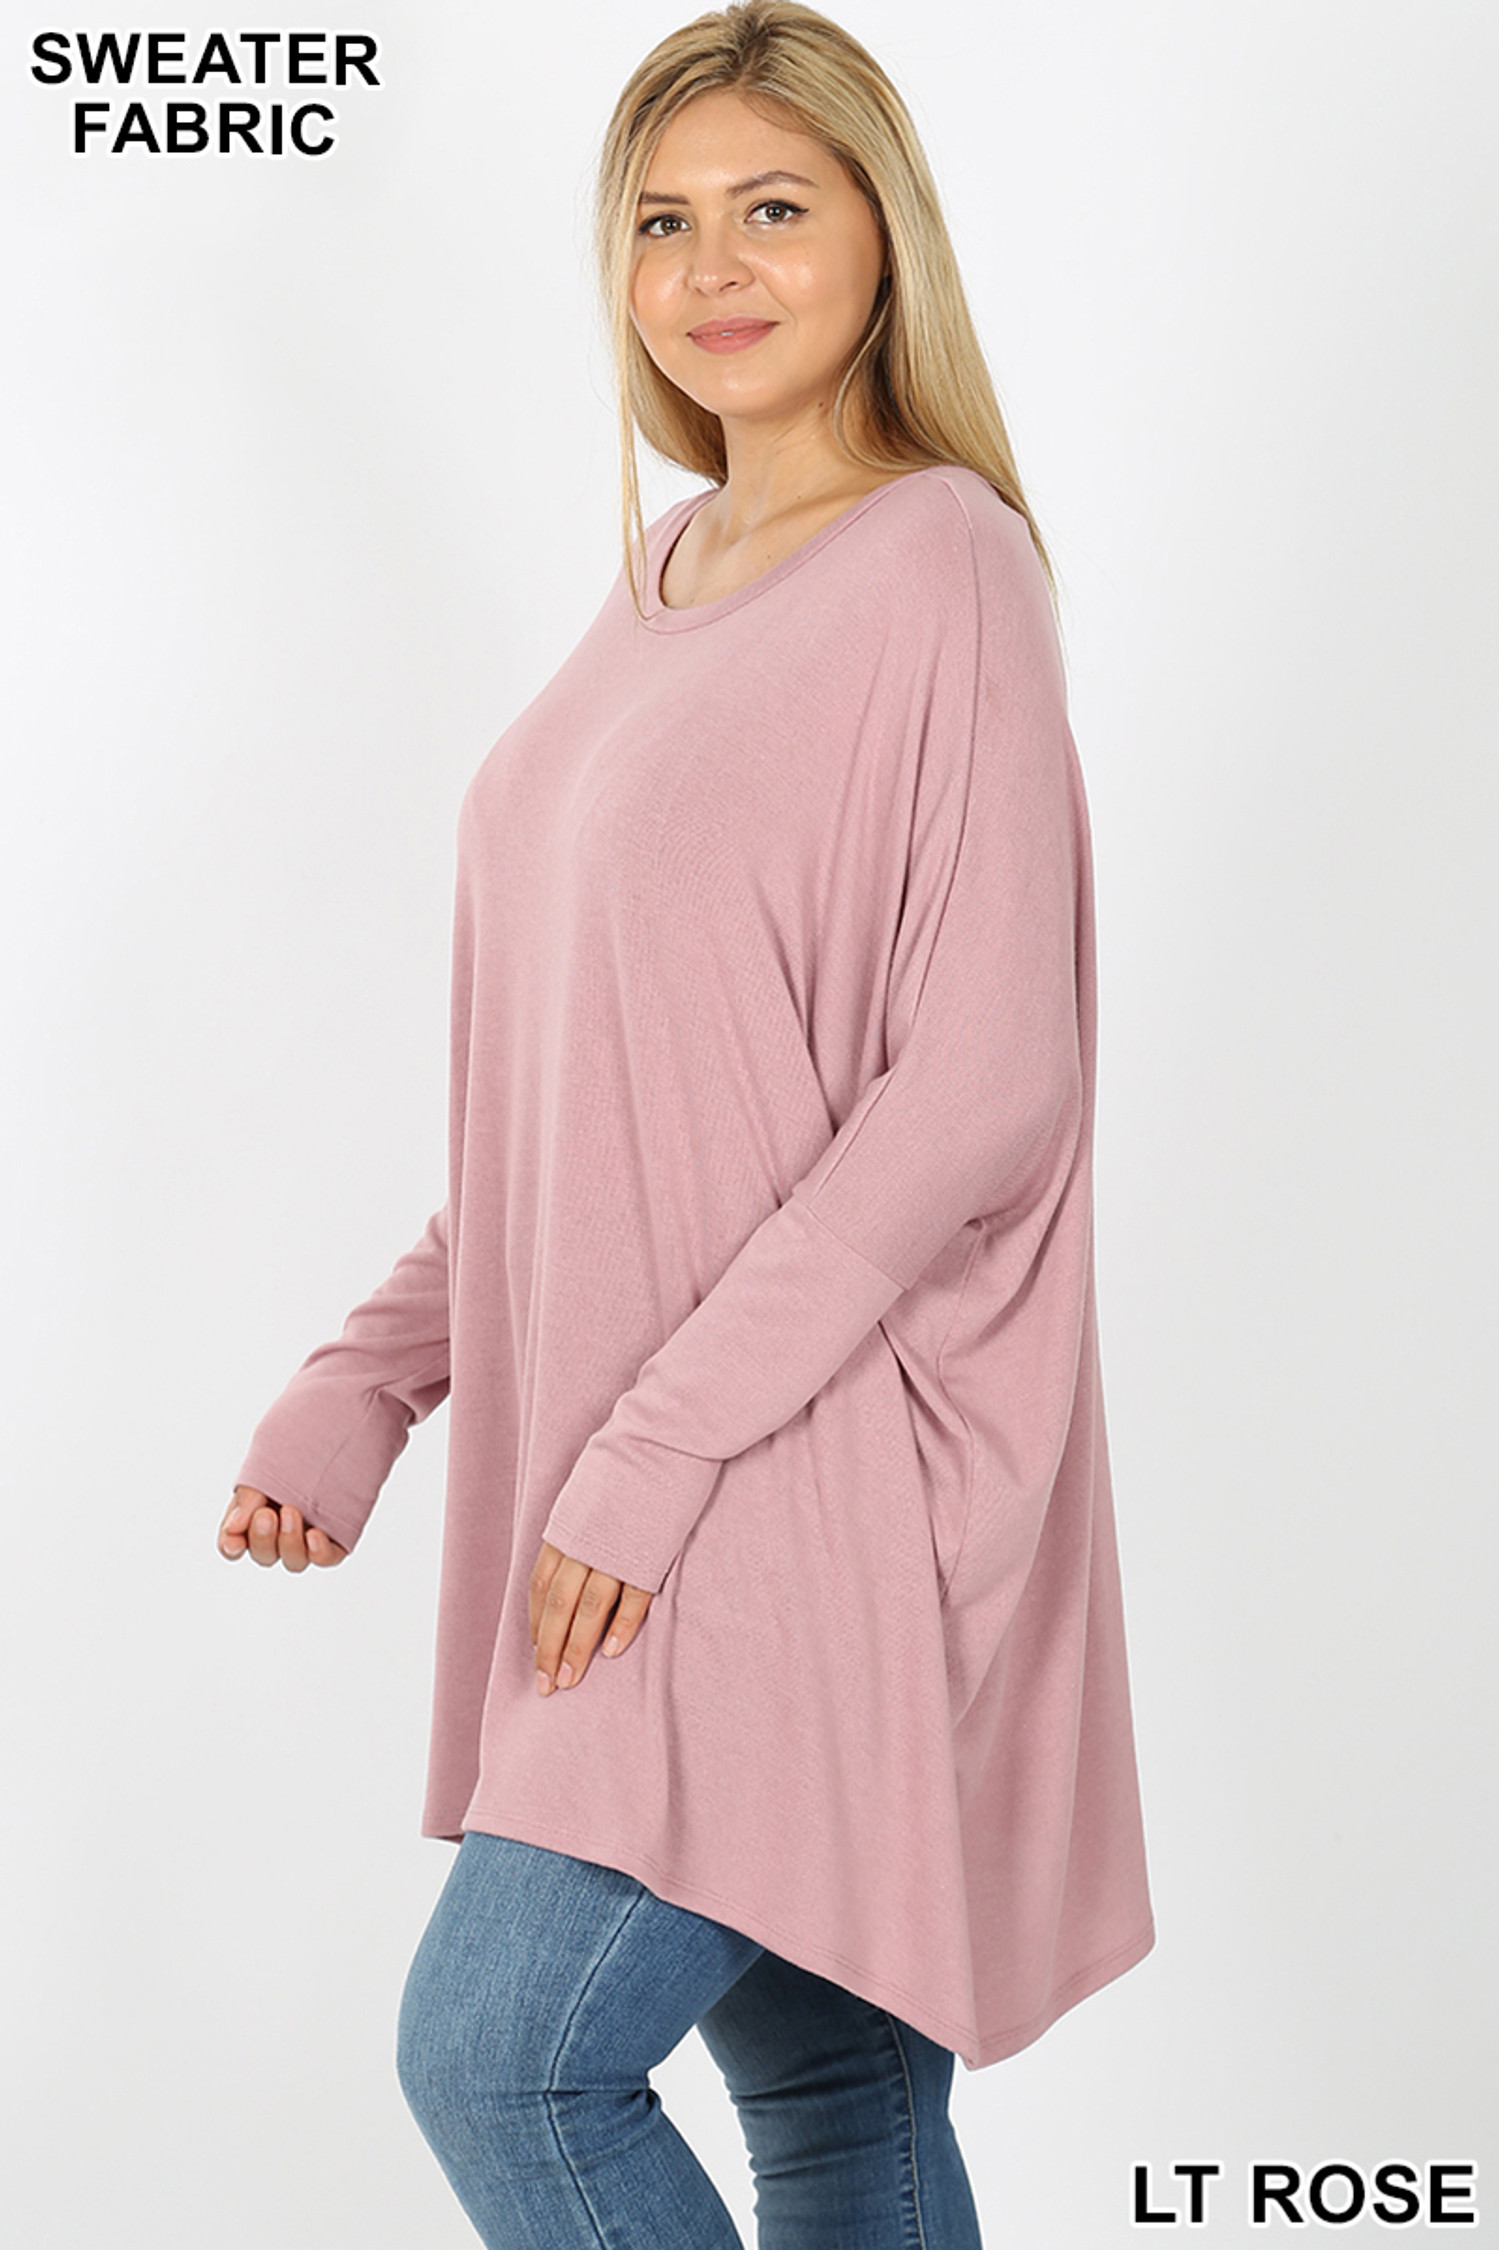 Left side view of Lt Rose Oversized Round Neck Poncho Plus Size Sweater